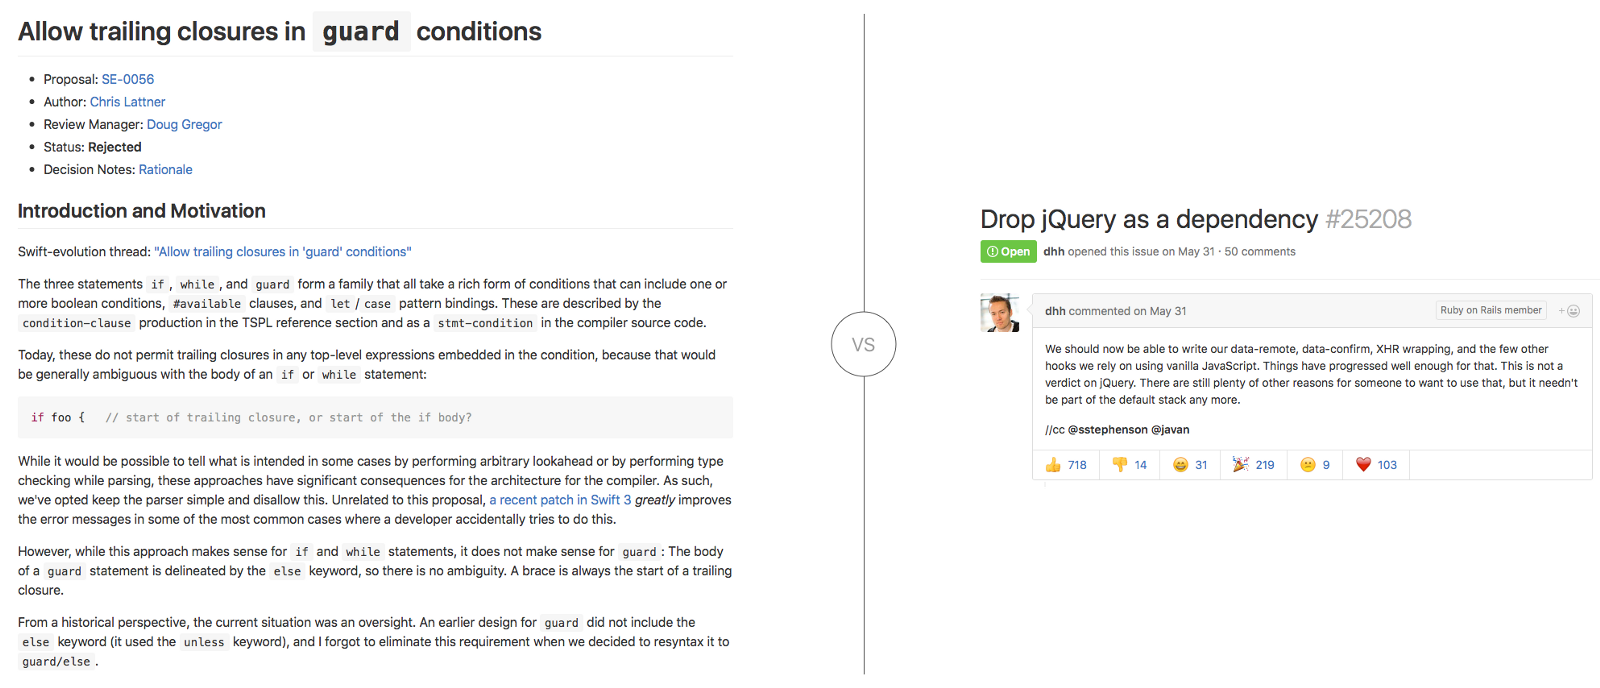 Objective c background image no repeat - Swift Vs Dhh